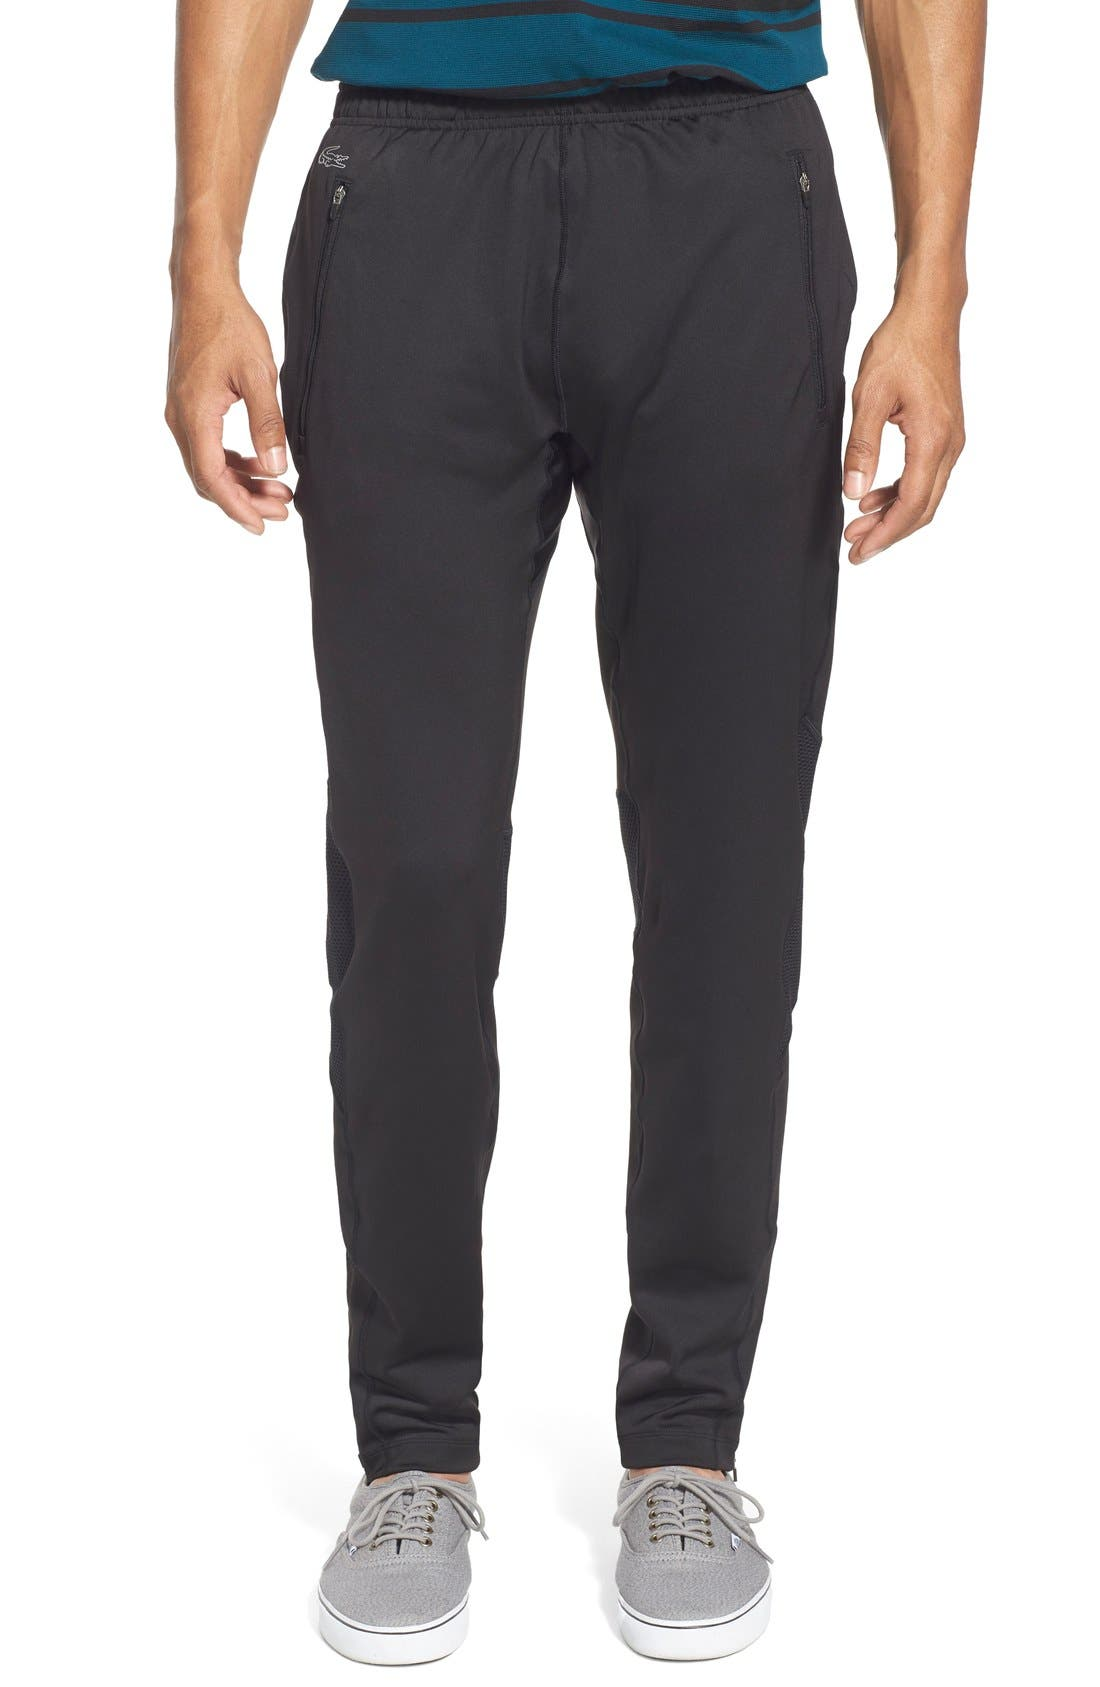 Alternate Image 1 Selected - Lacoste'Sport' Ultra Dry Stretch Performance Track Pants